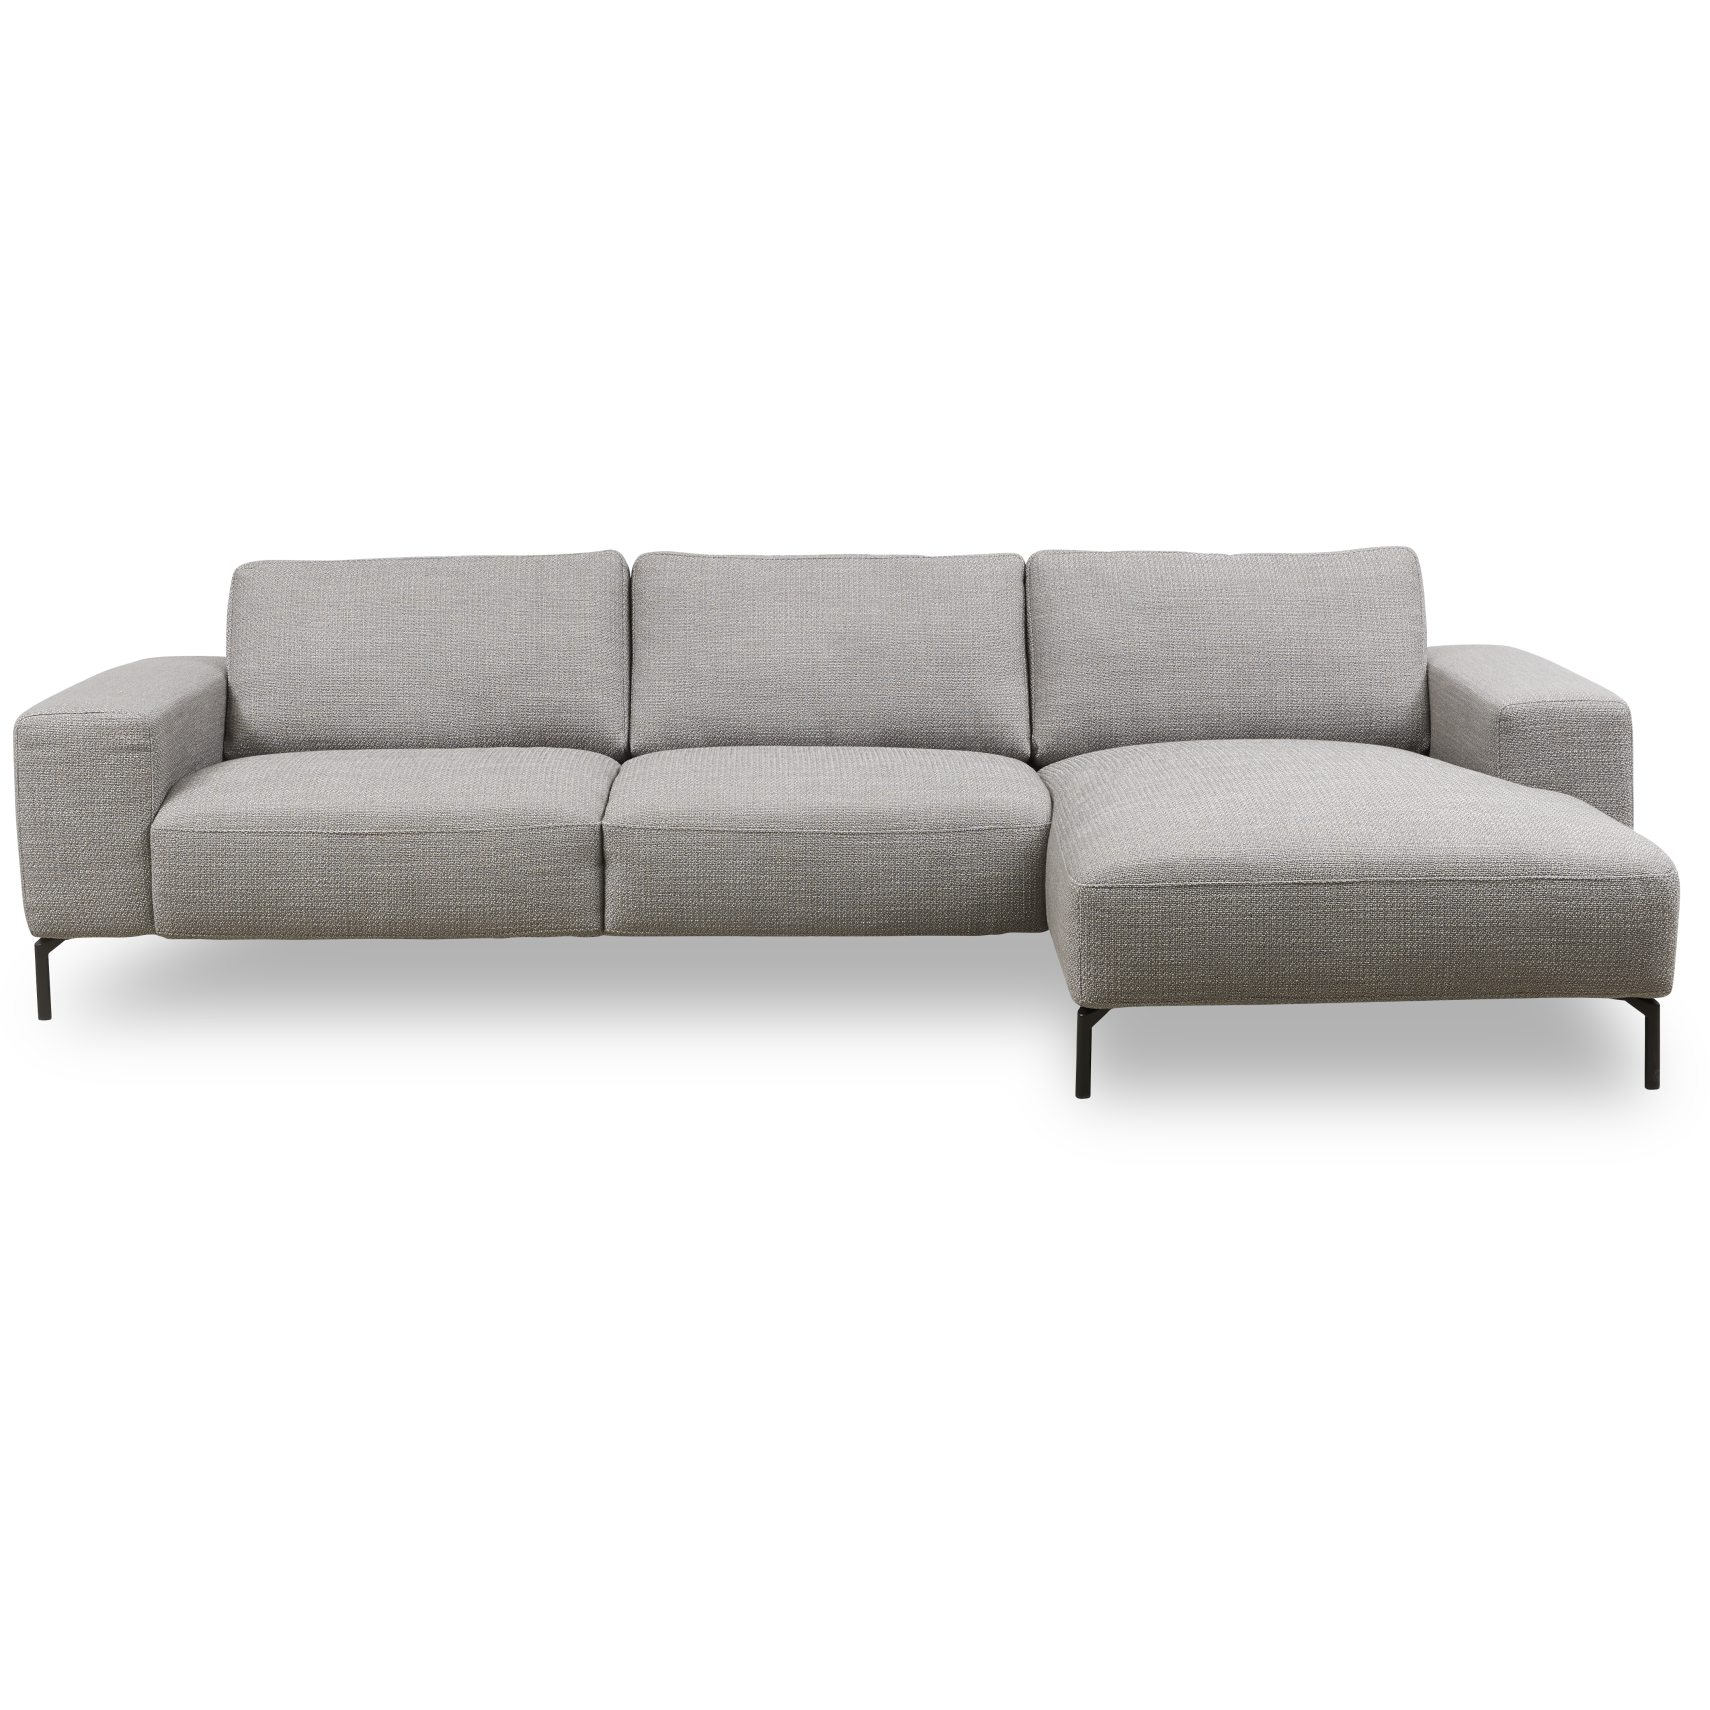 Melbourne Sofa med chaiselong